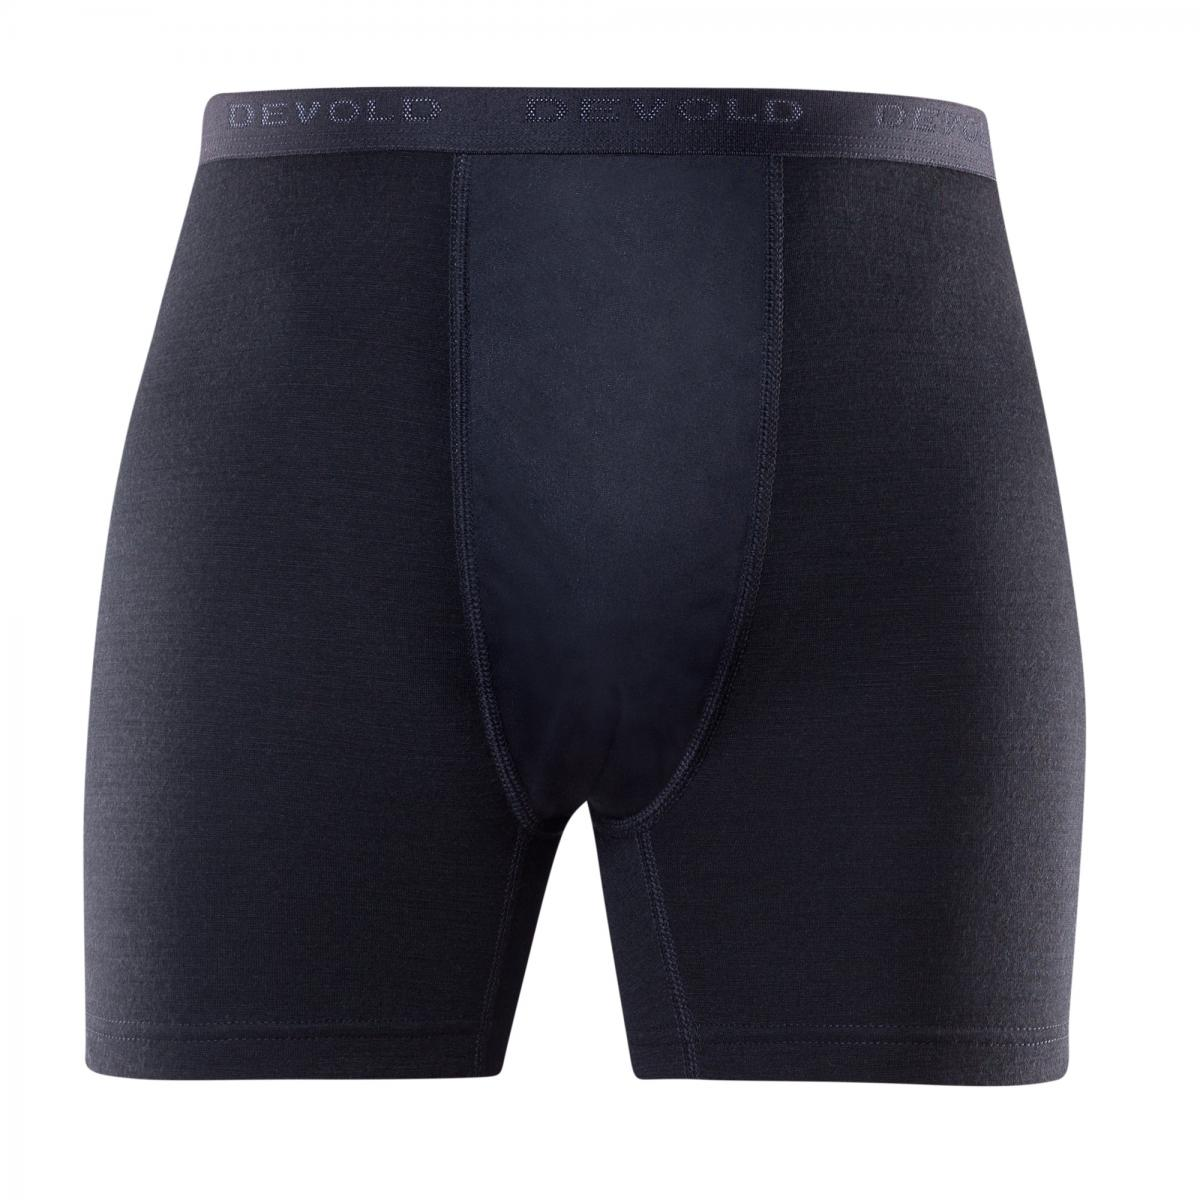 DUO ACTIVE MAN BOXER W/WINDSTO